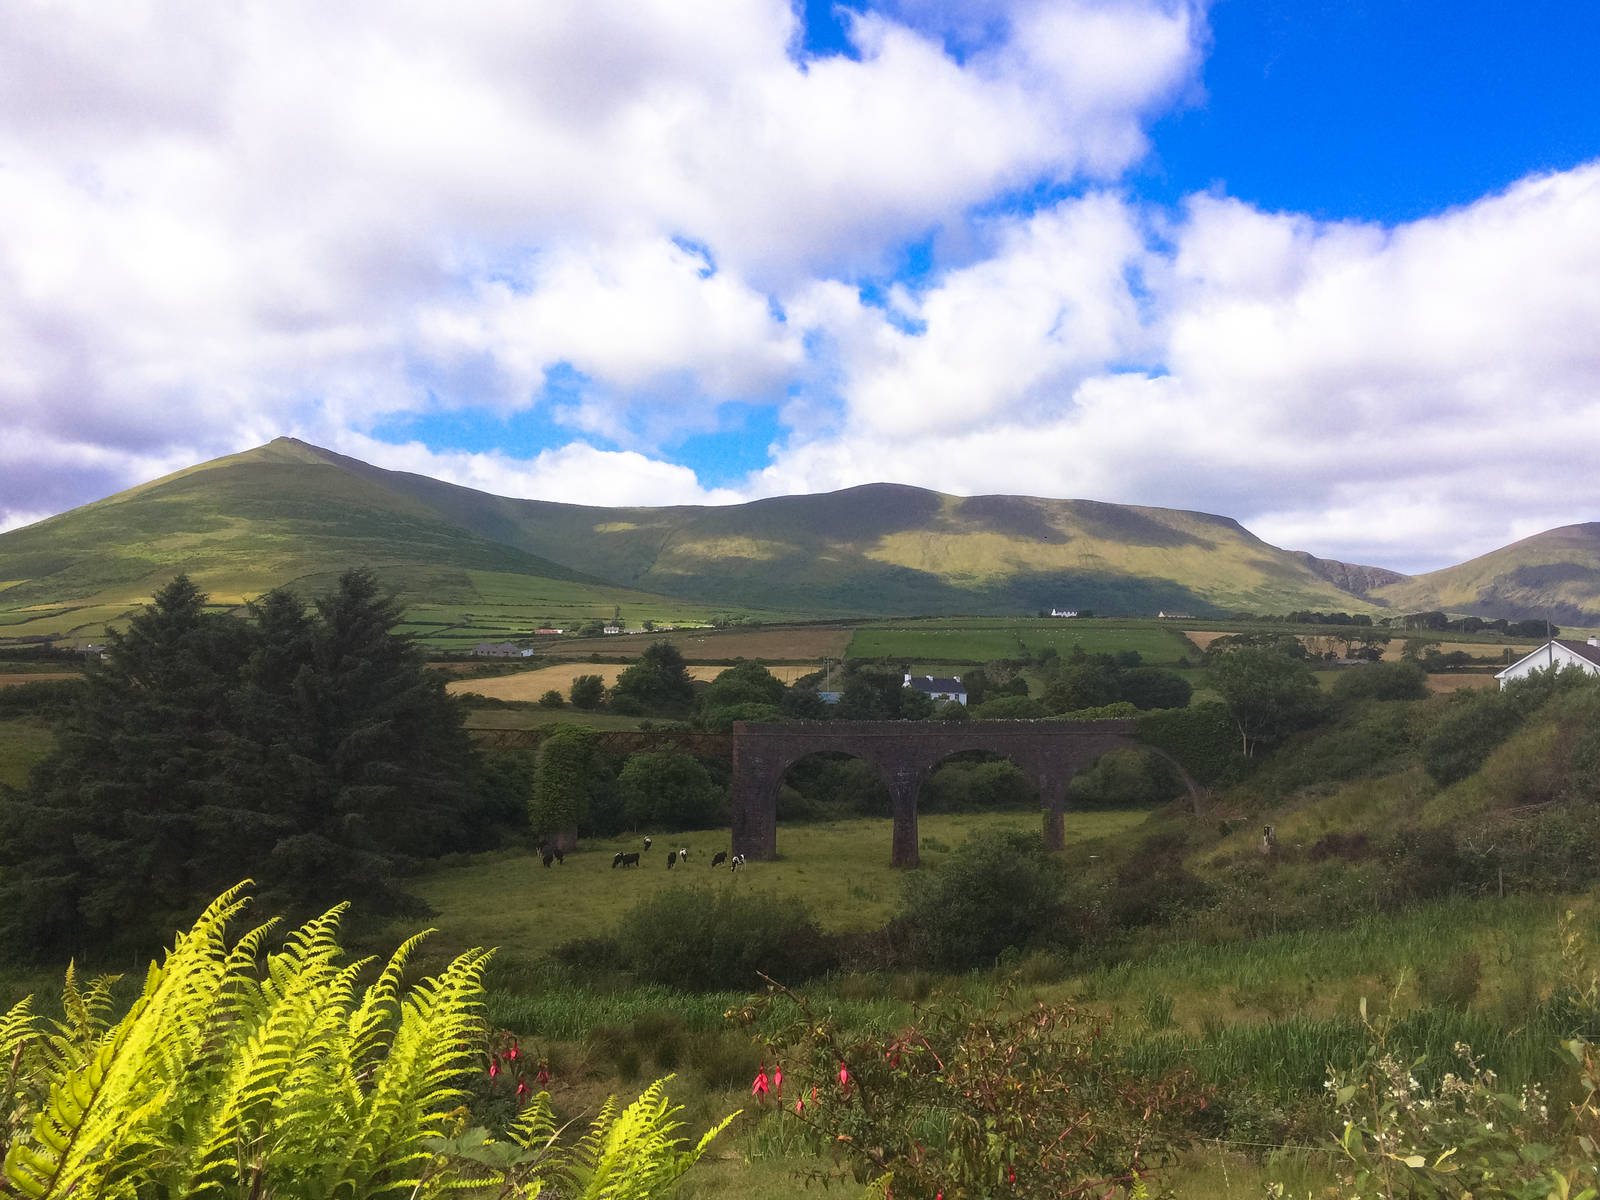 View from the roadside near Dingle